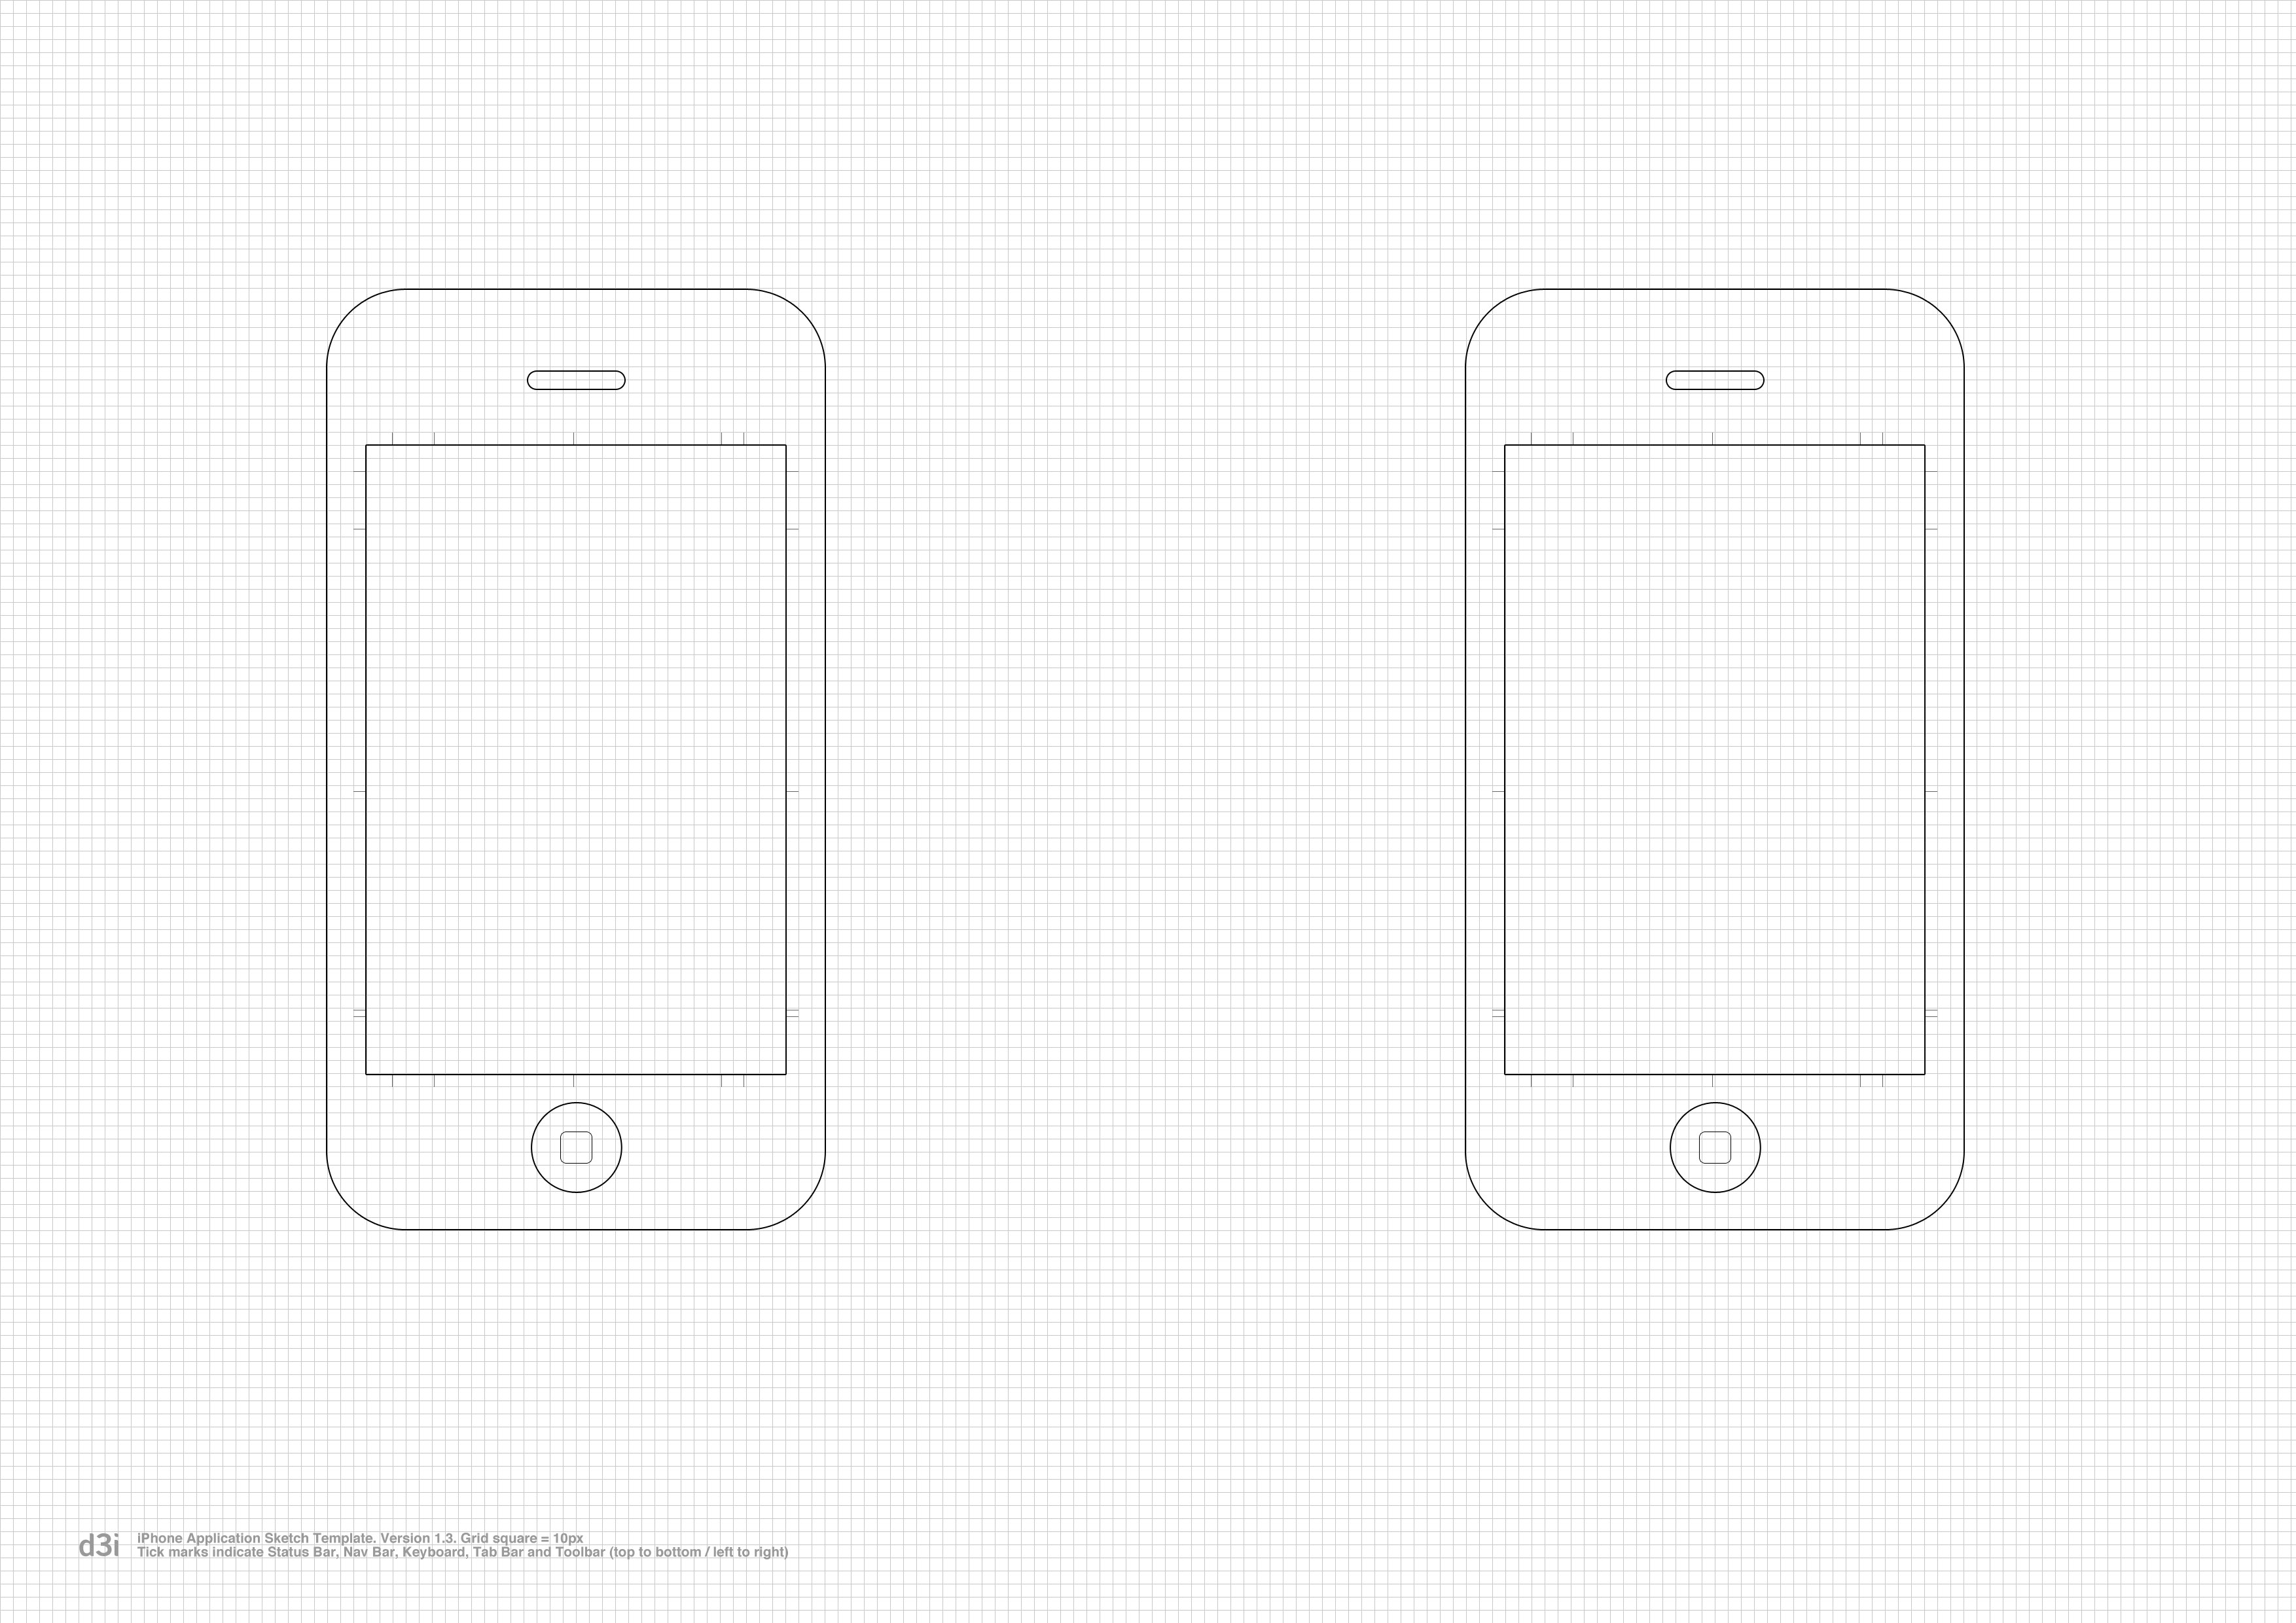 Iphone Application Sketch Template V1 3 Heres The